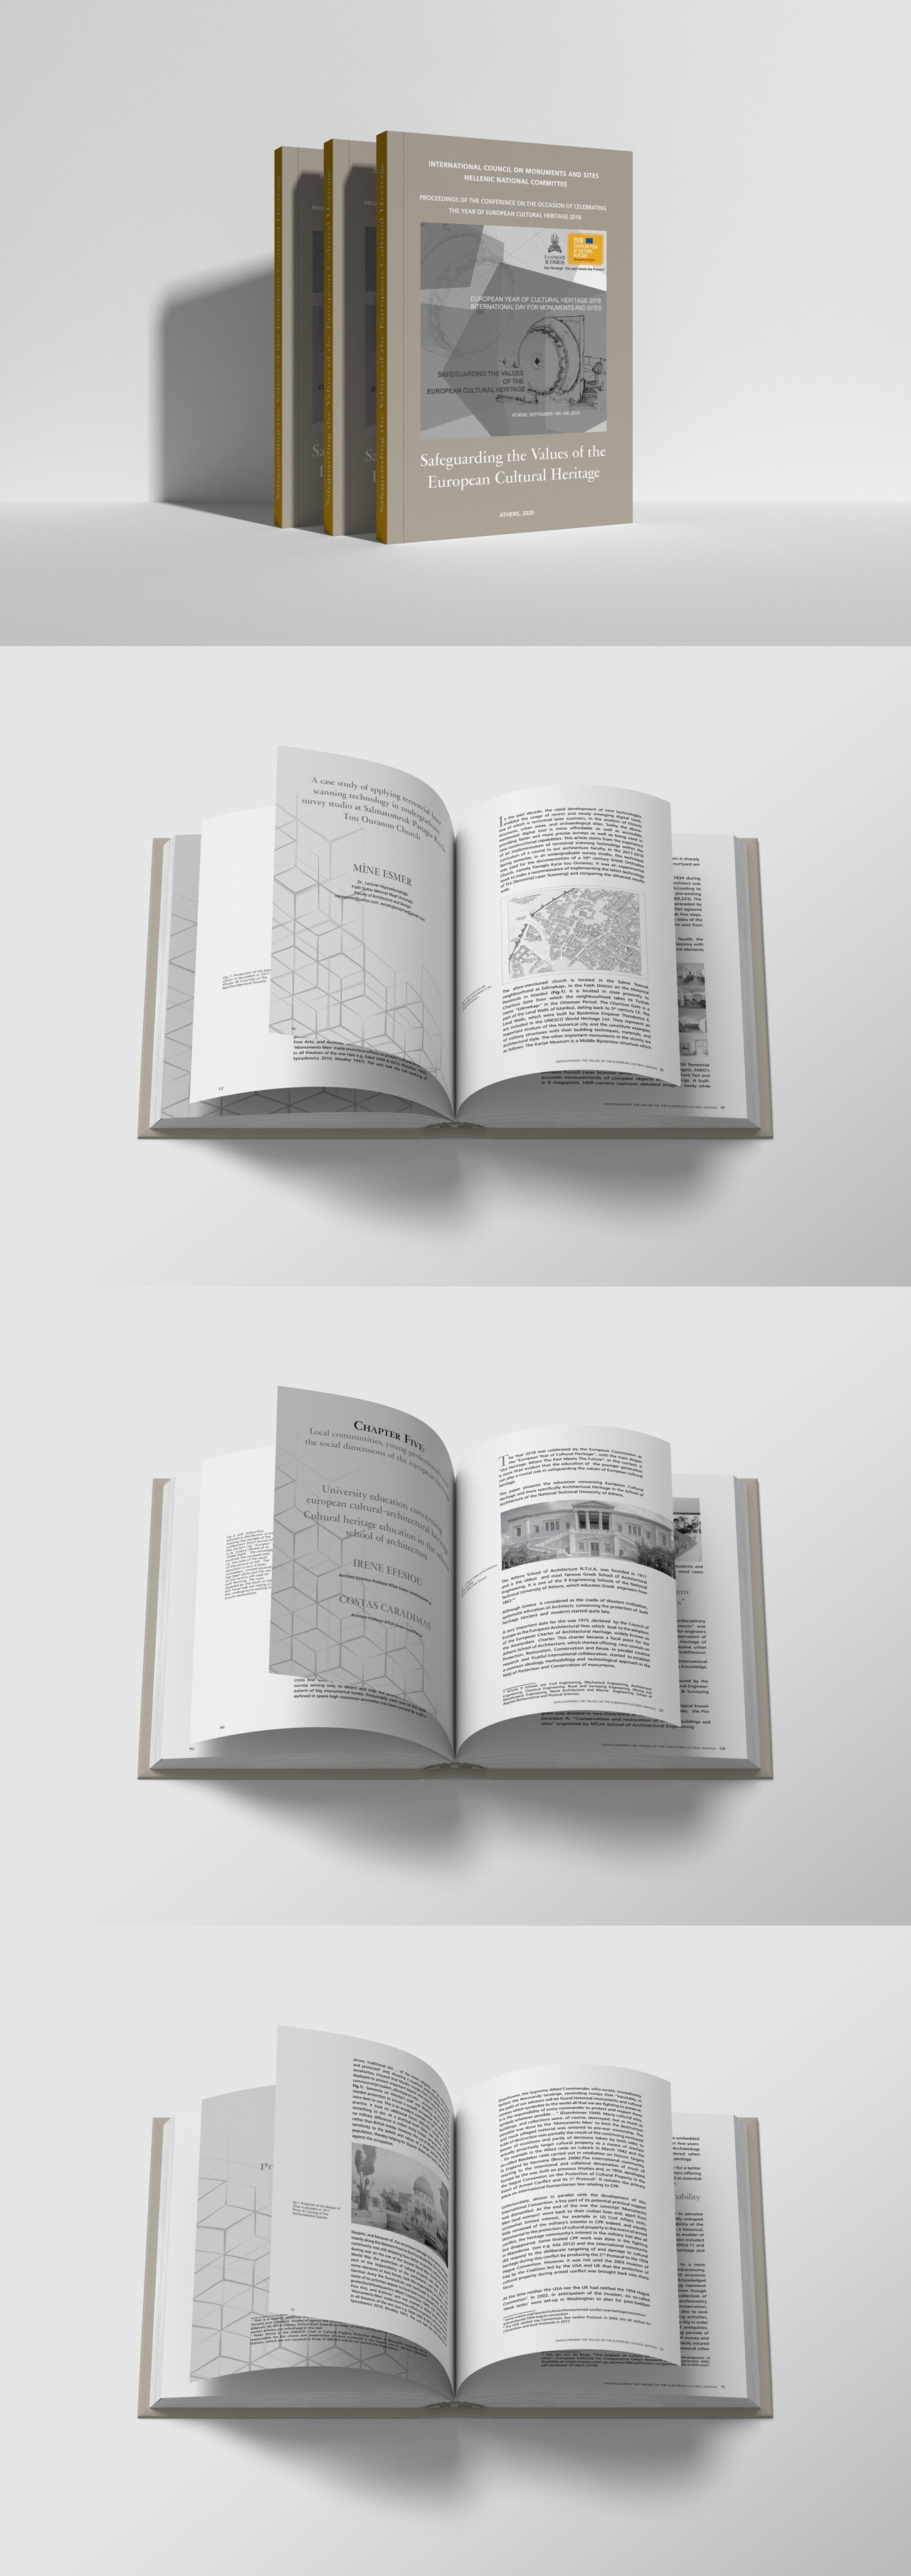 ICOMOS book design